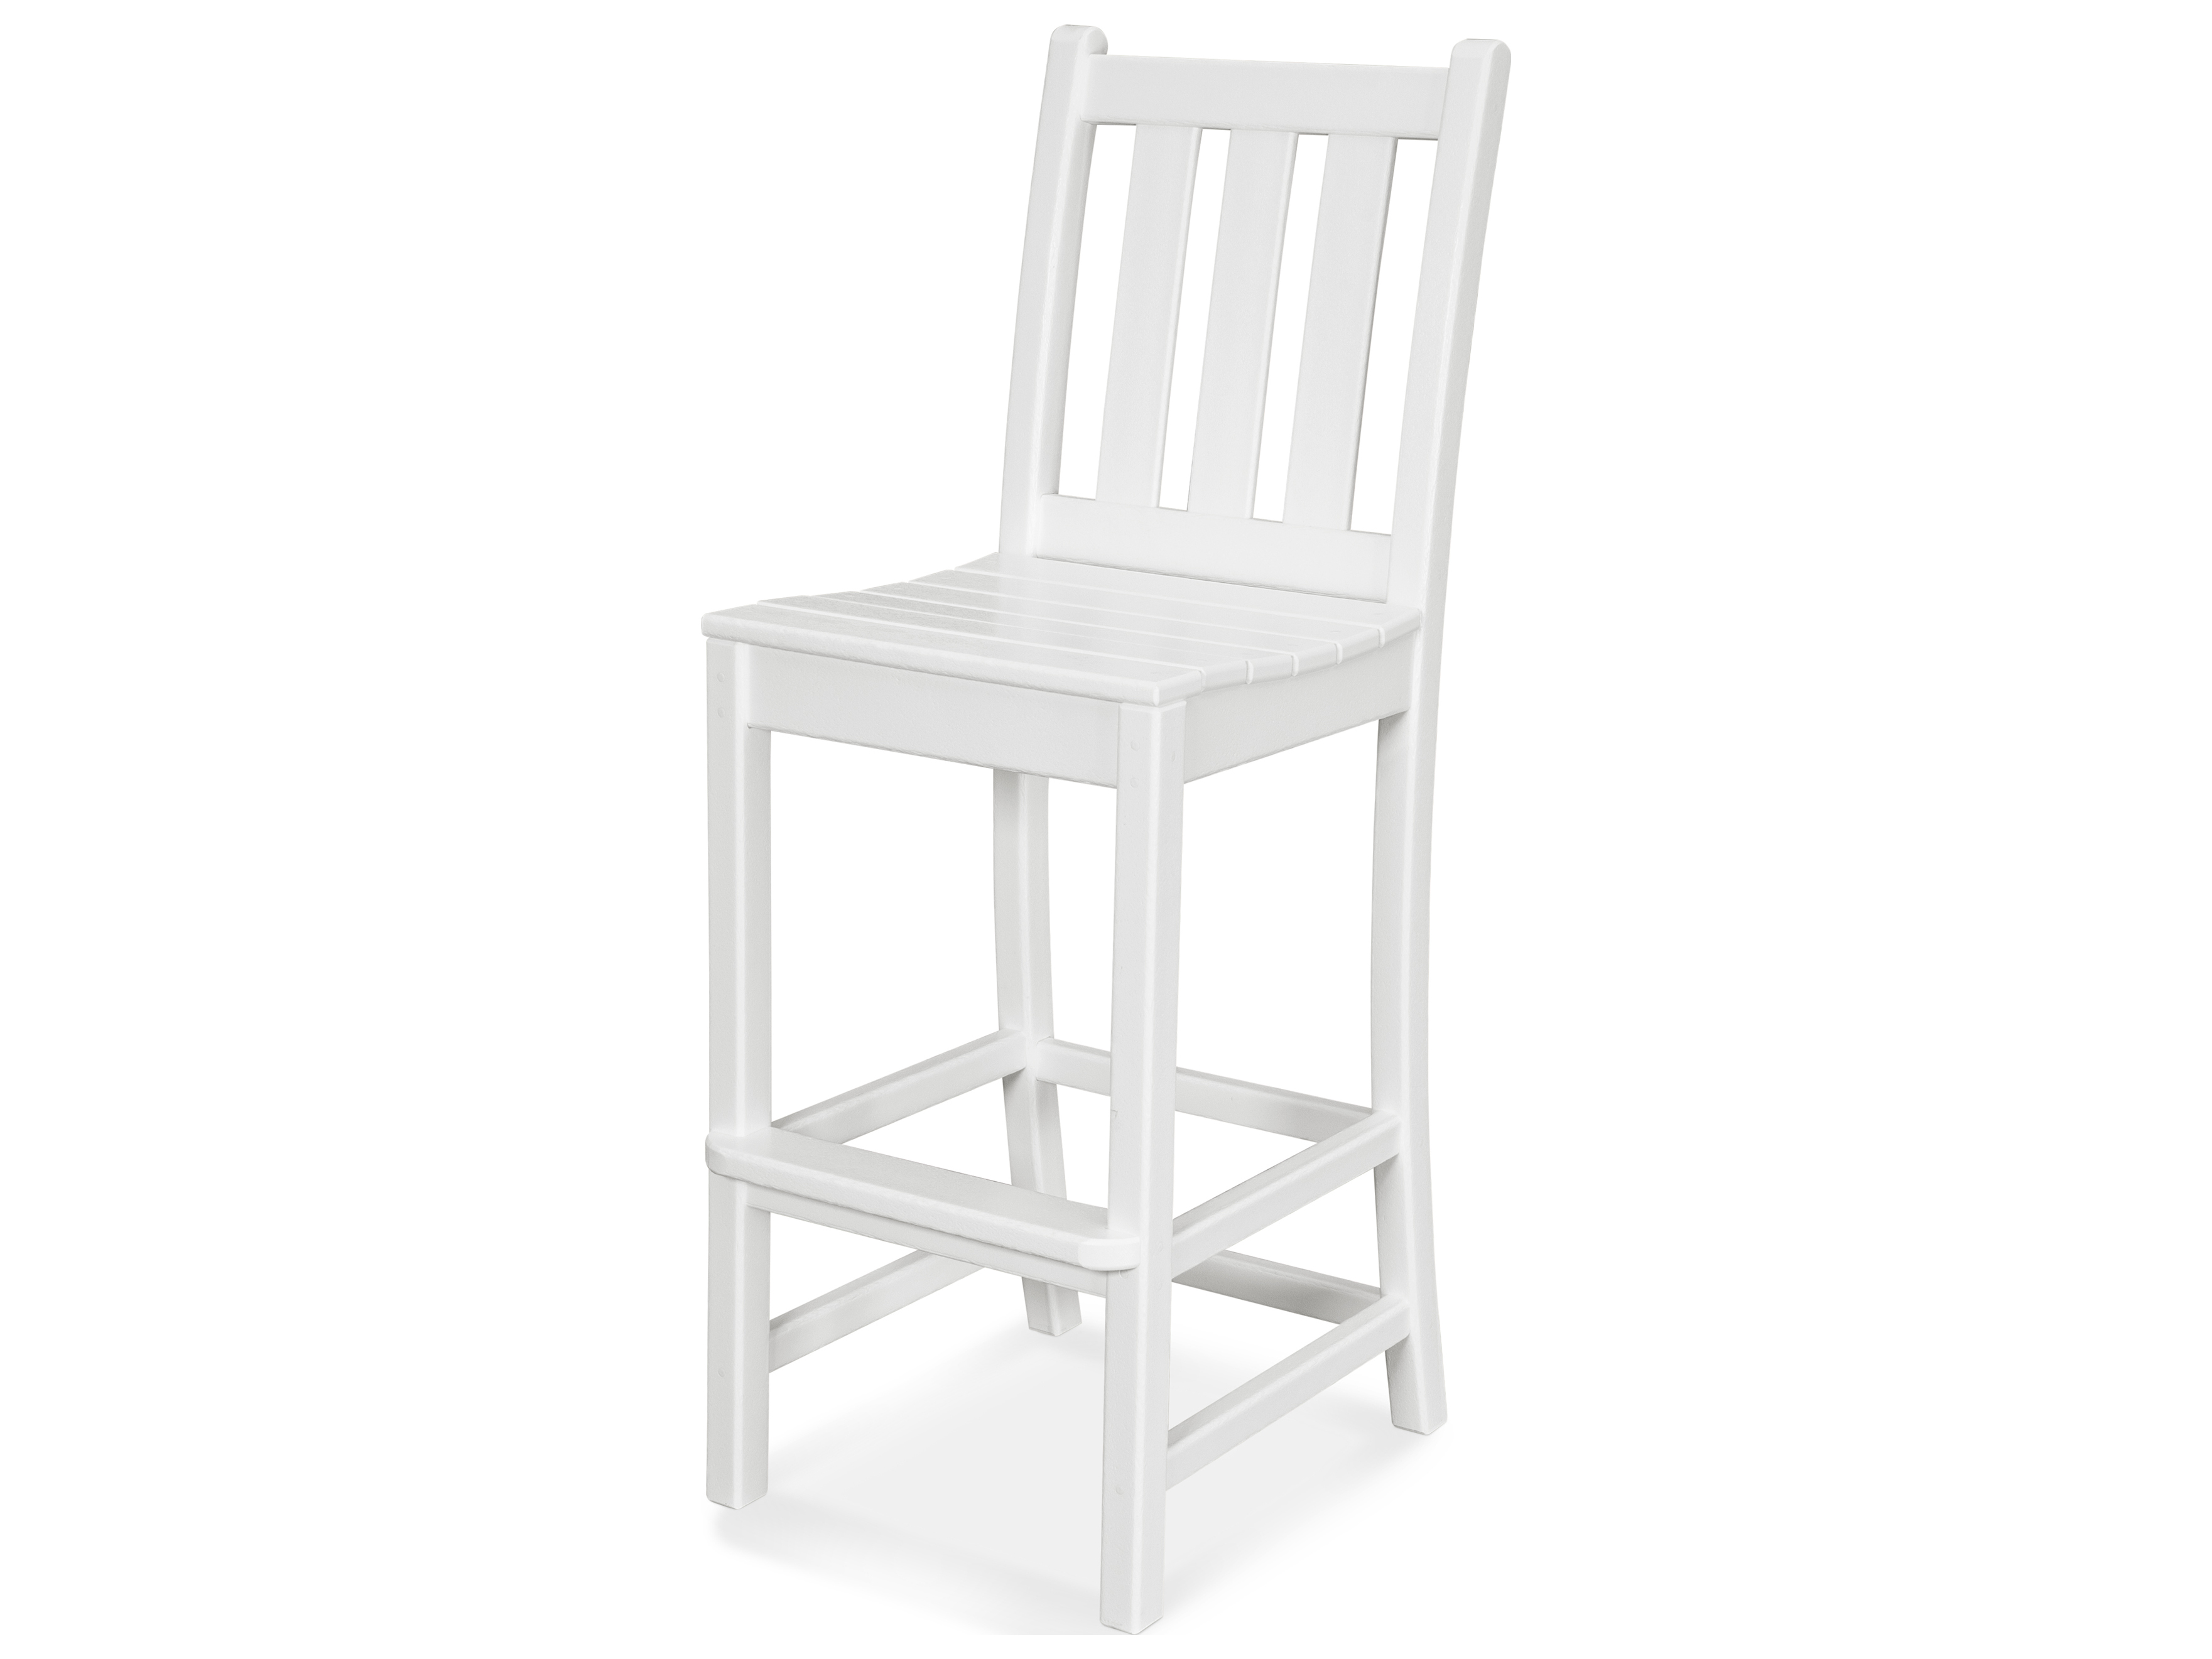 Polywood 174 Traditional Garden Recycled Plastic Bar Stool